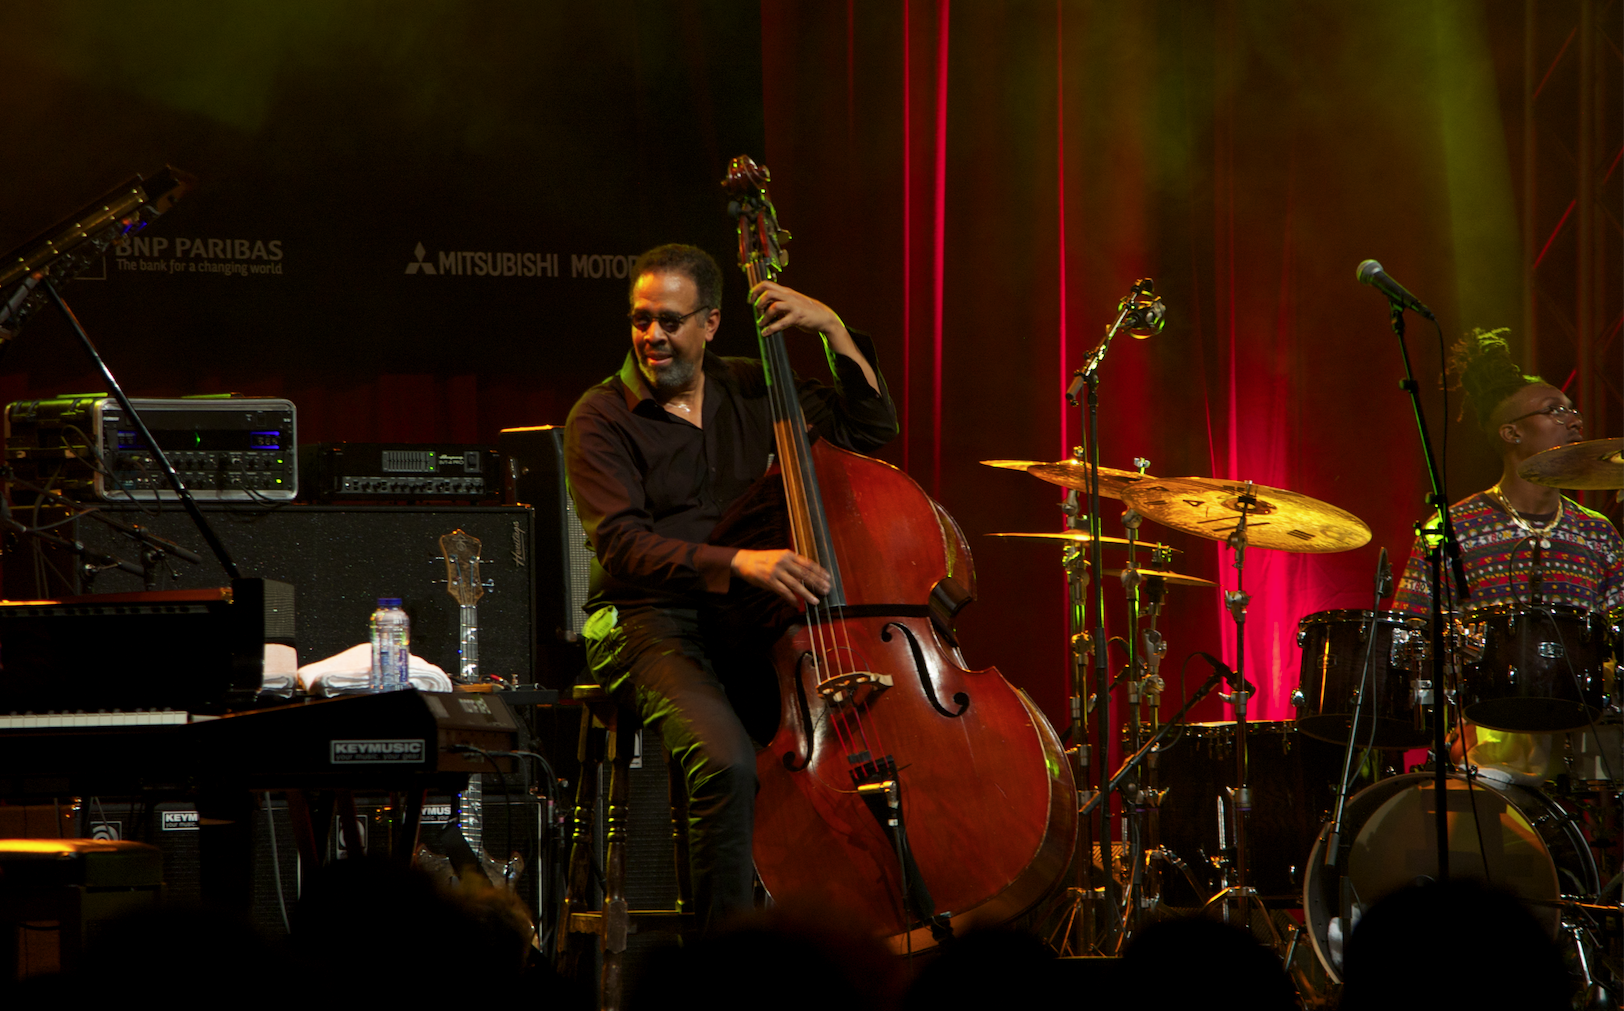 A musical dialogue between Stanley Clarke, Michael Mitchell on drums